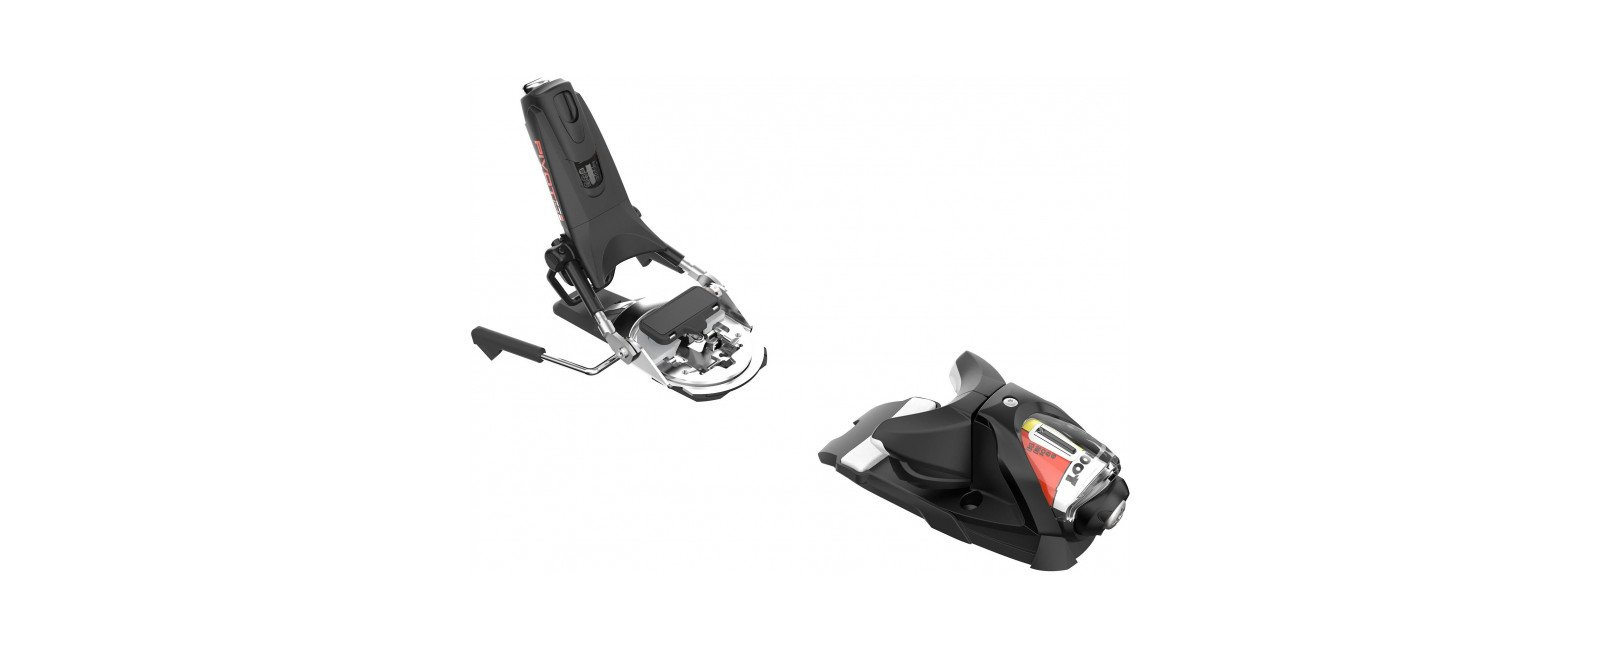 Look Pivot 14 Dual WTR B115 Bindings